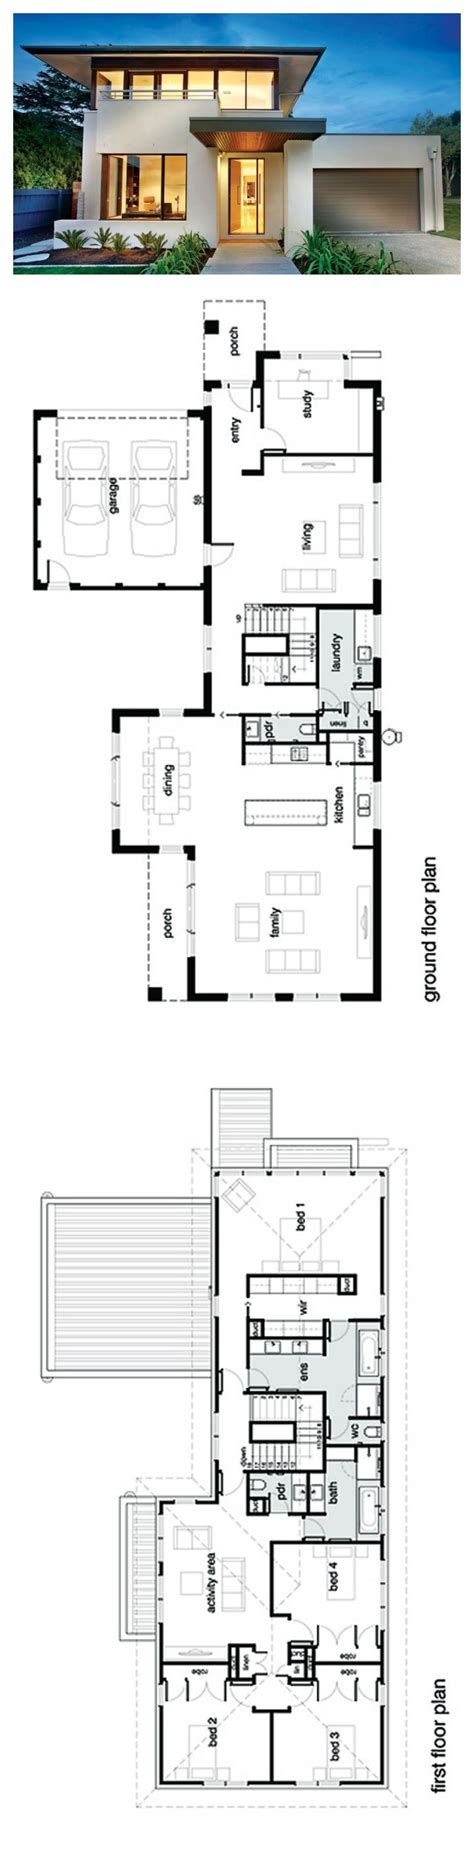 modern home floor plan the 25 best ideas about modern house plans on pinterest modern house floor plans modern